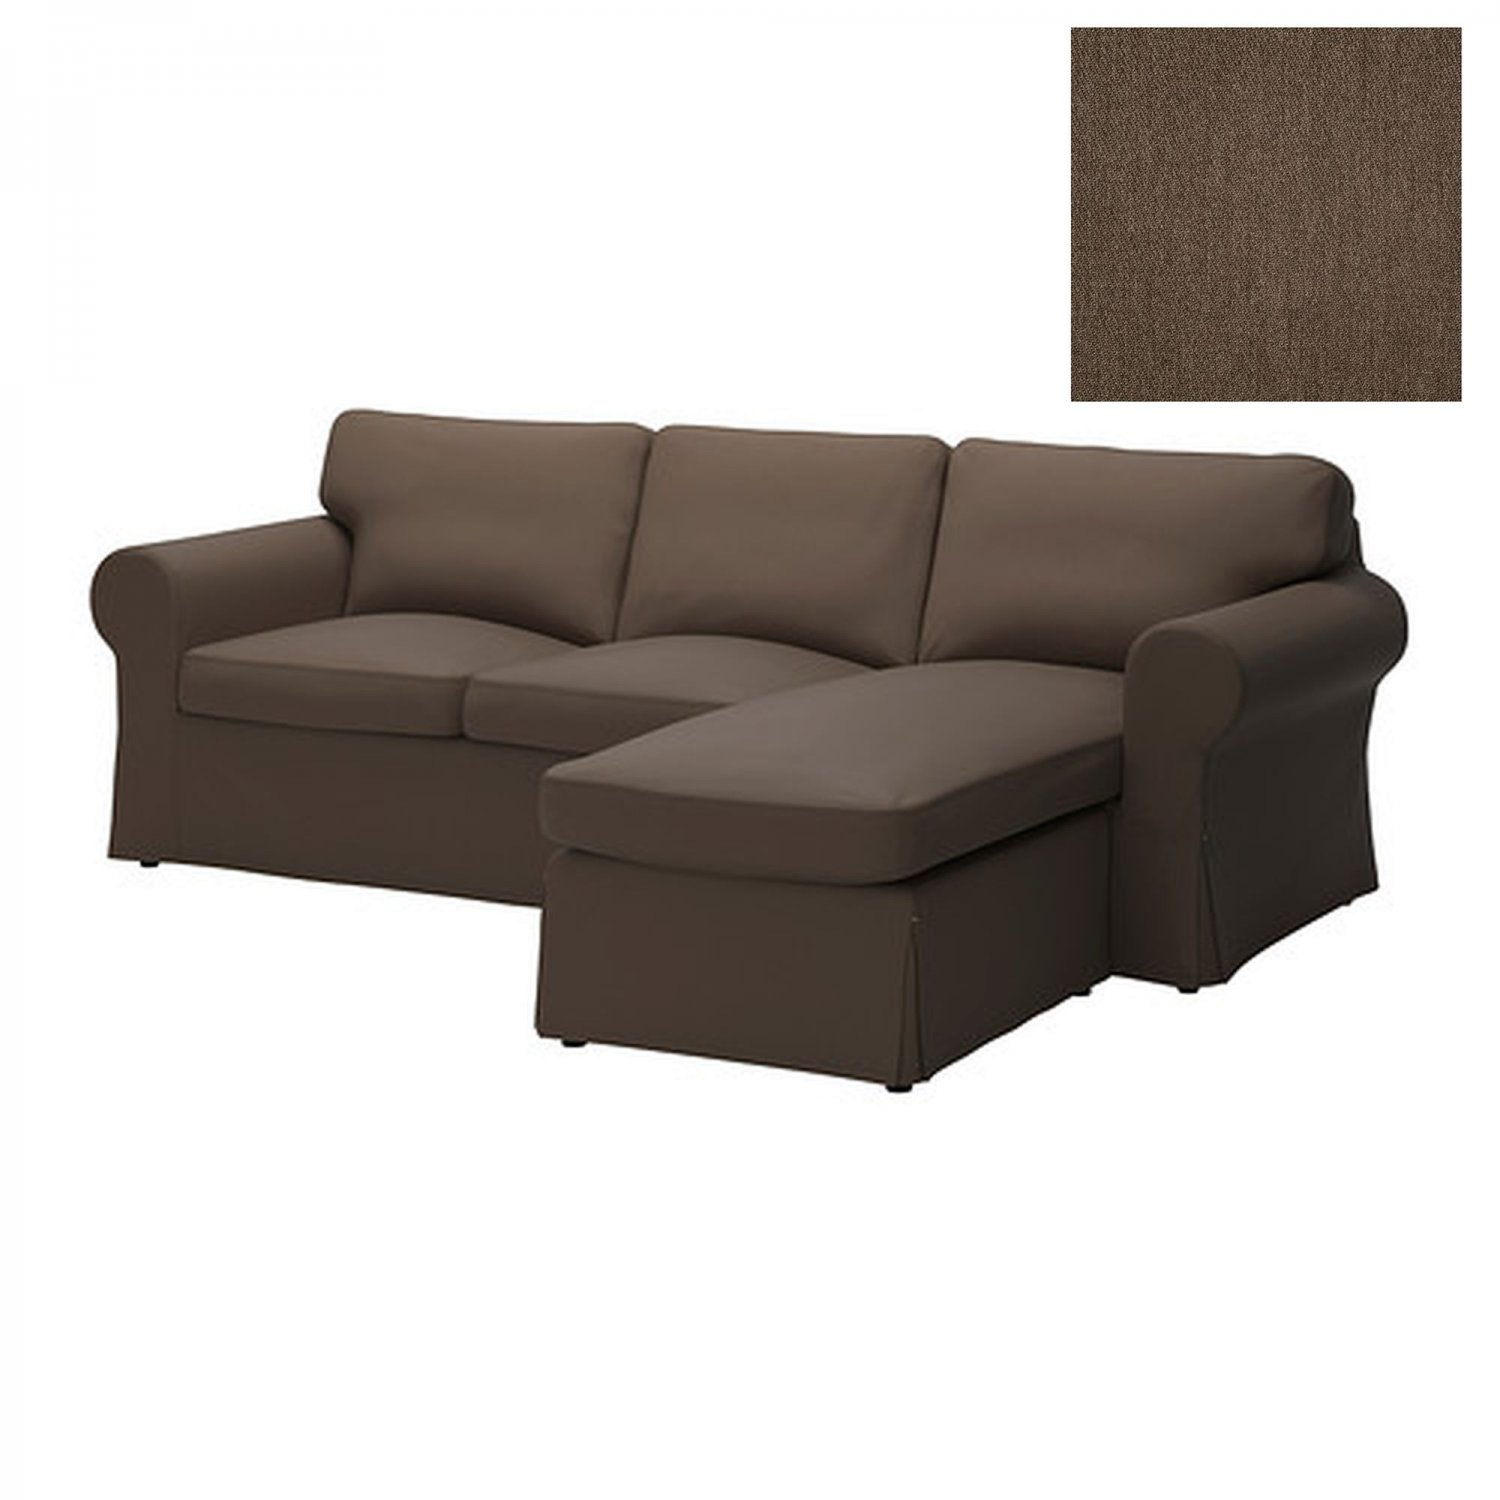 Ikea Ektorp Loveseat With Chaise Slipcover 2 Seat Sofa W Chaise Cover Jonsboda Brown